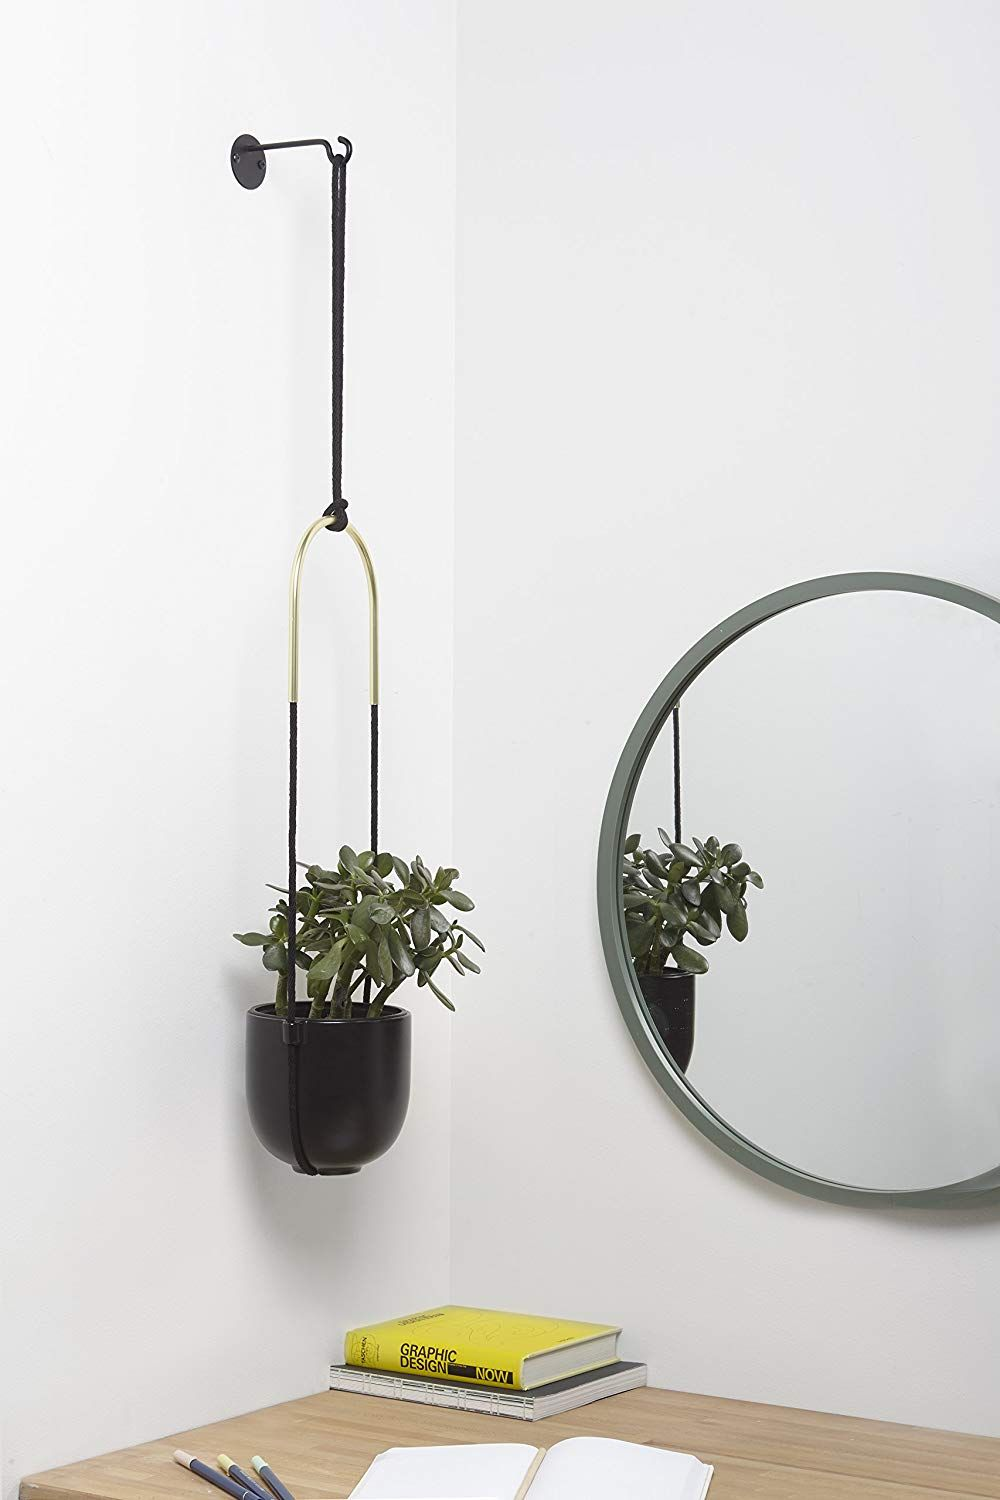 Umbra Bolo Wall and Ceiling Planter